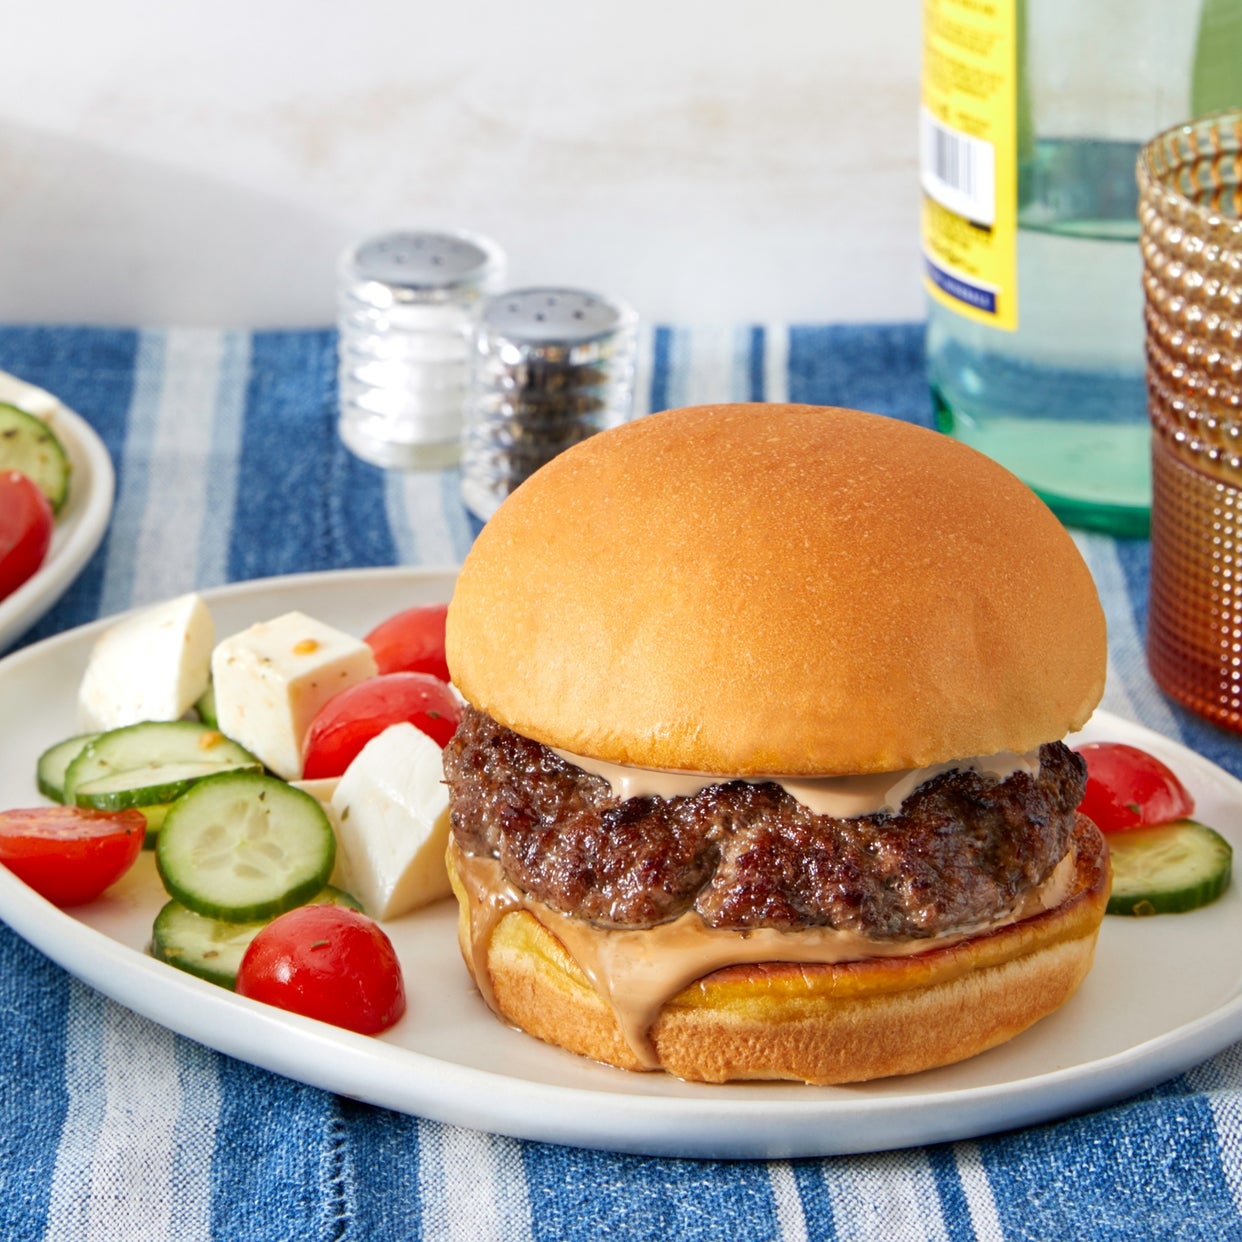 Balsamic Burgers with Mozzarella, Tomato, & Cucumber Salad